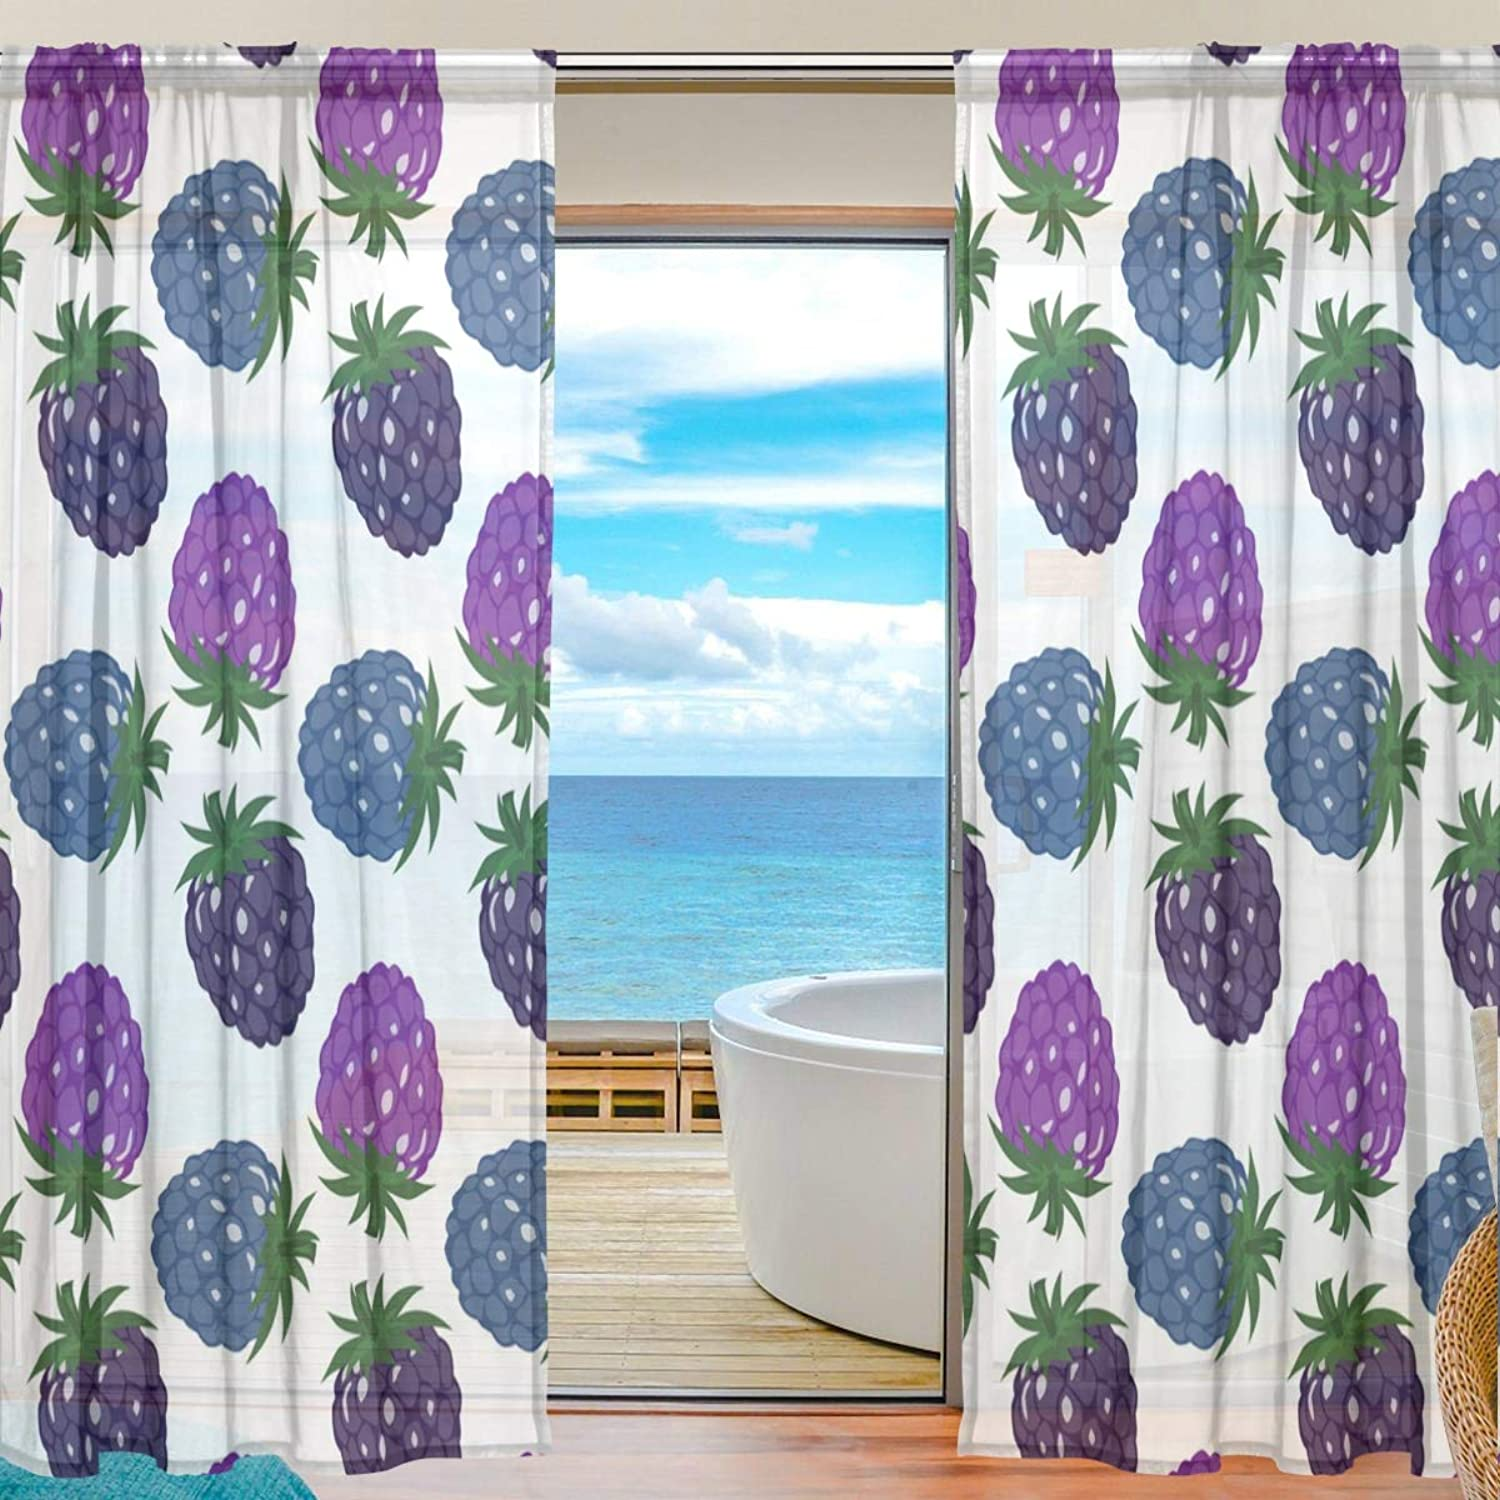 colorful Strawberry 2 Pieces Curtain Panel 55 x 78 inches for Bedroom Living Room